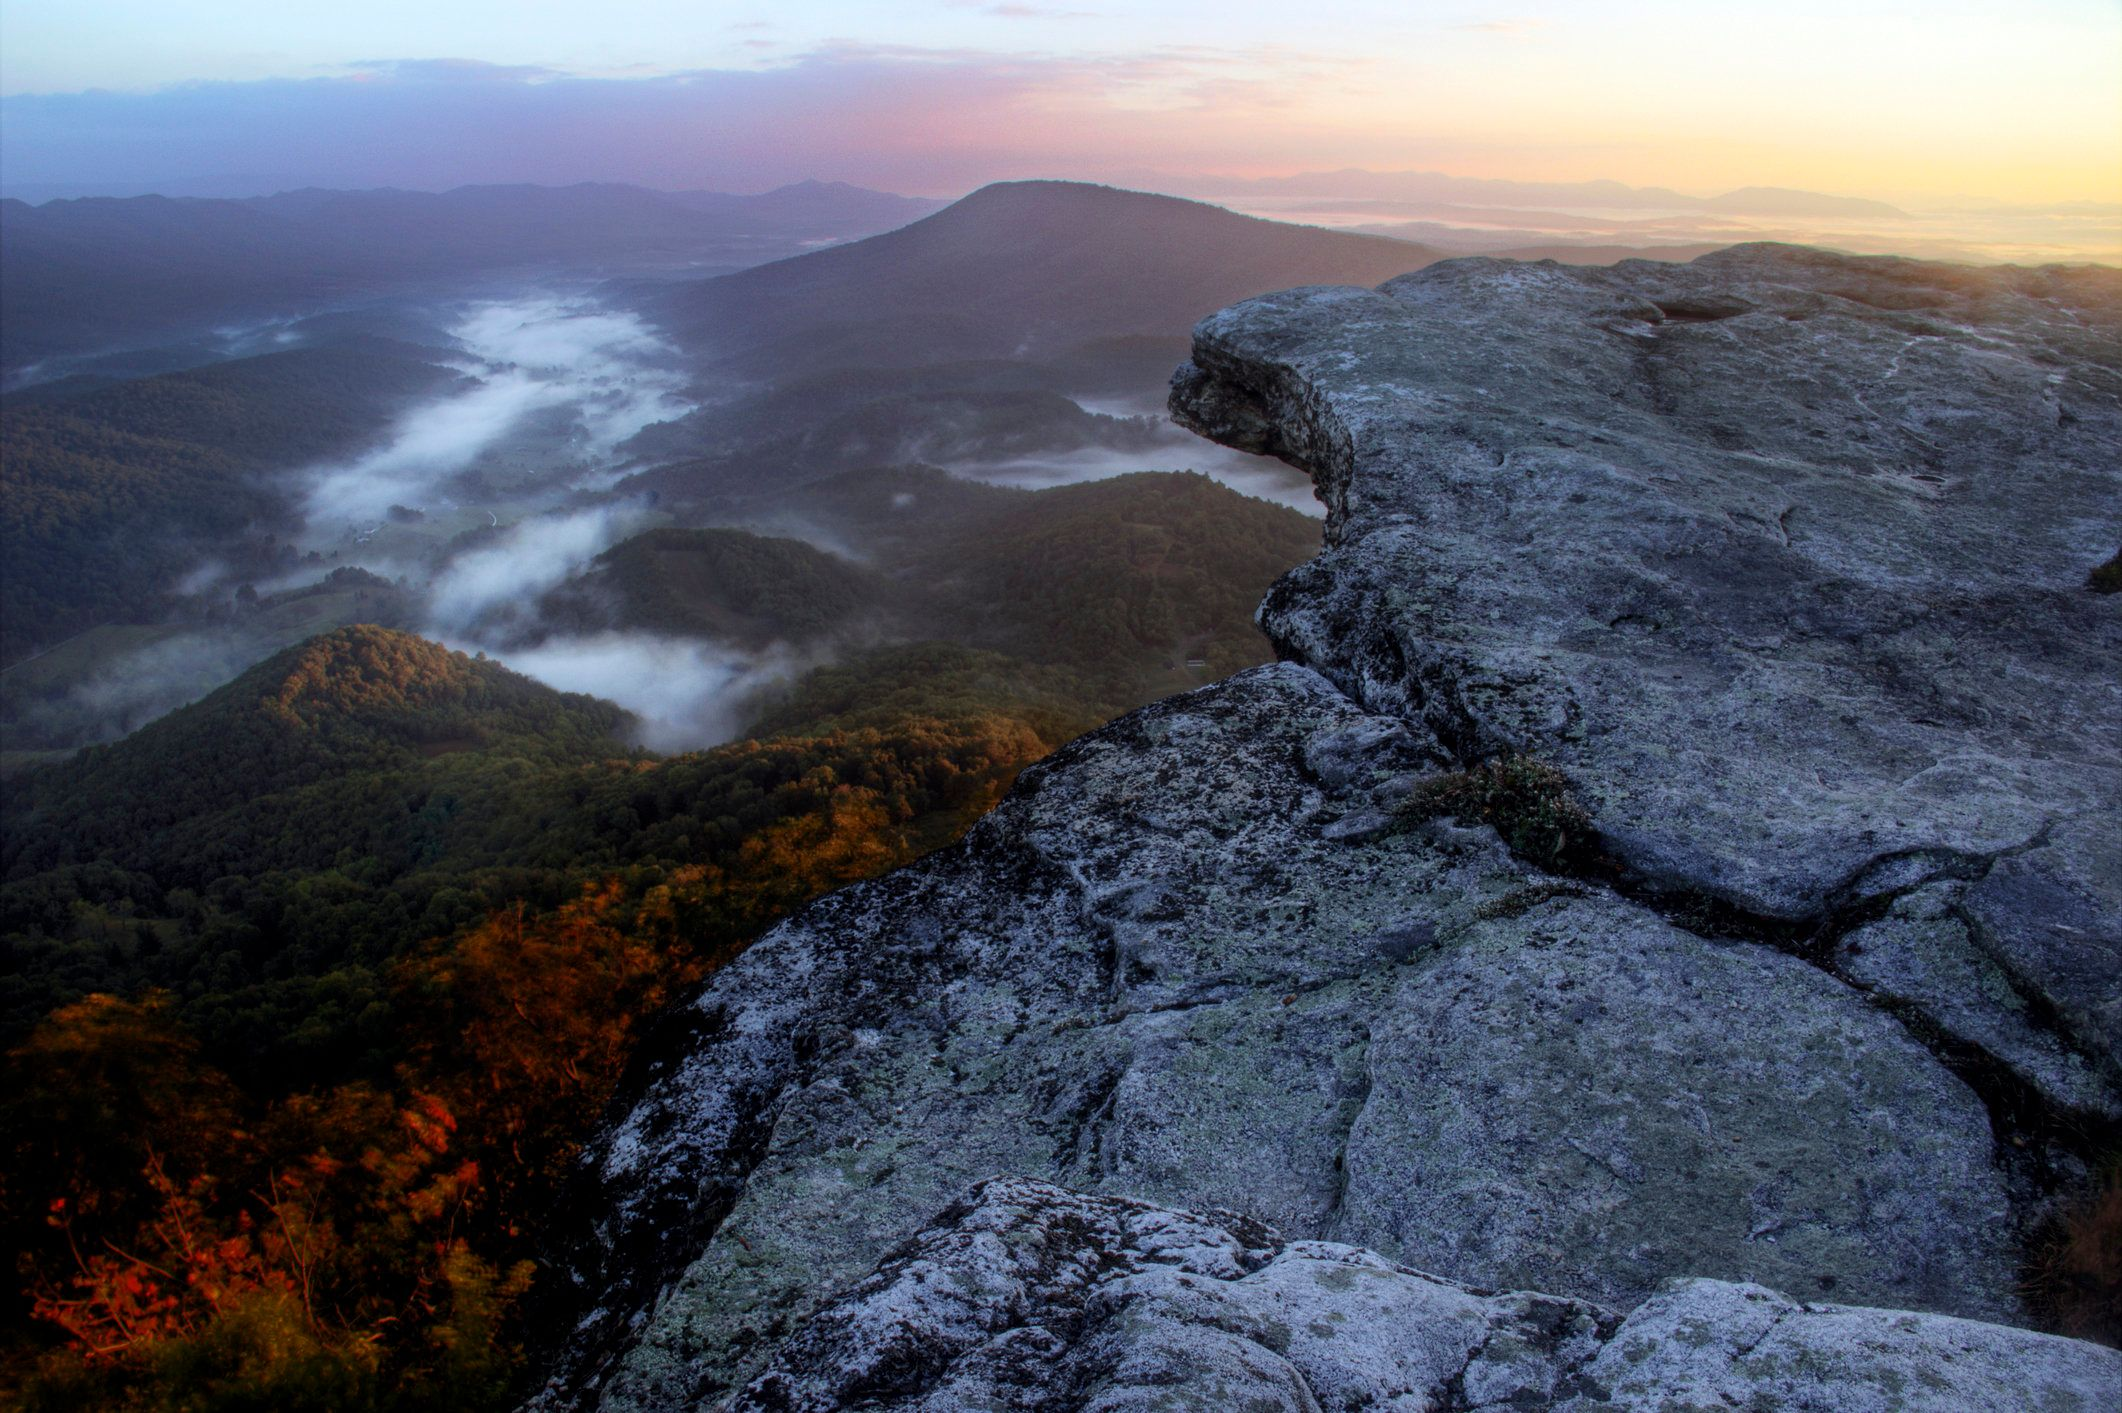 McAfee Knob is one lookout point that environmental groups say would be ruined by the pipeline cutting across the landscape.